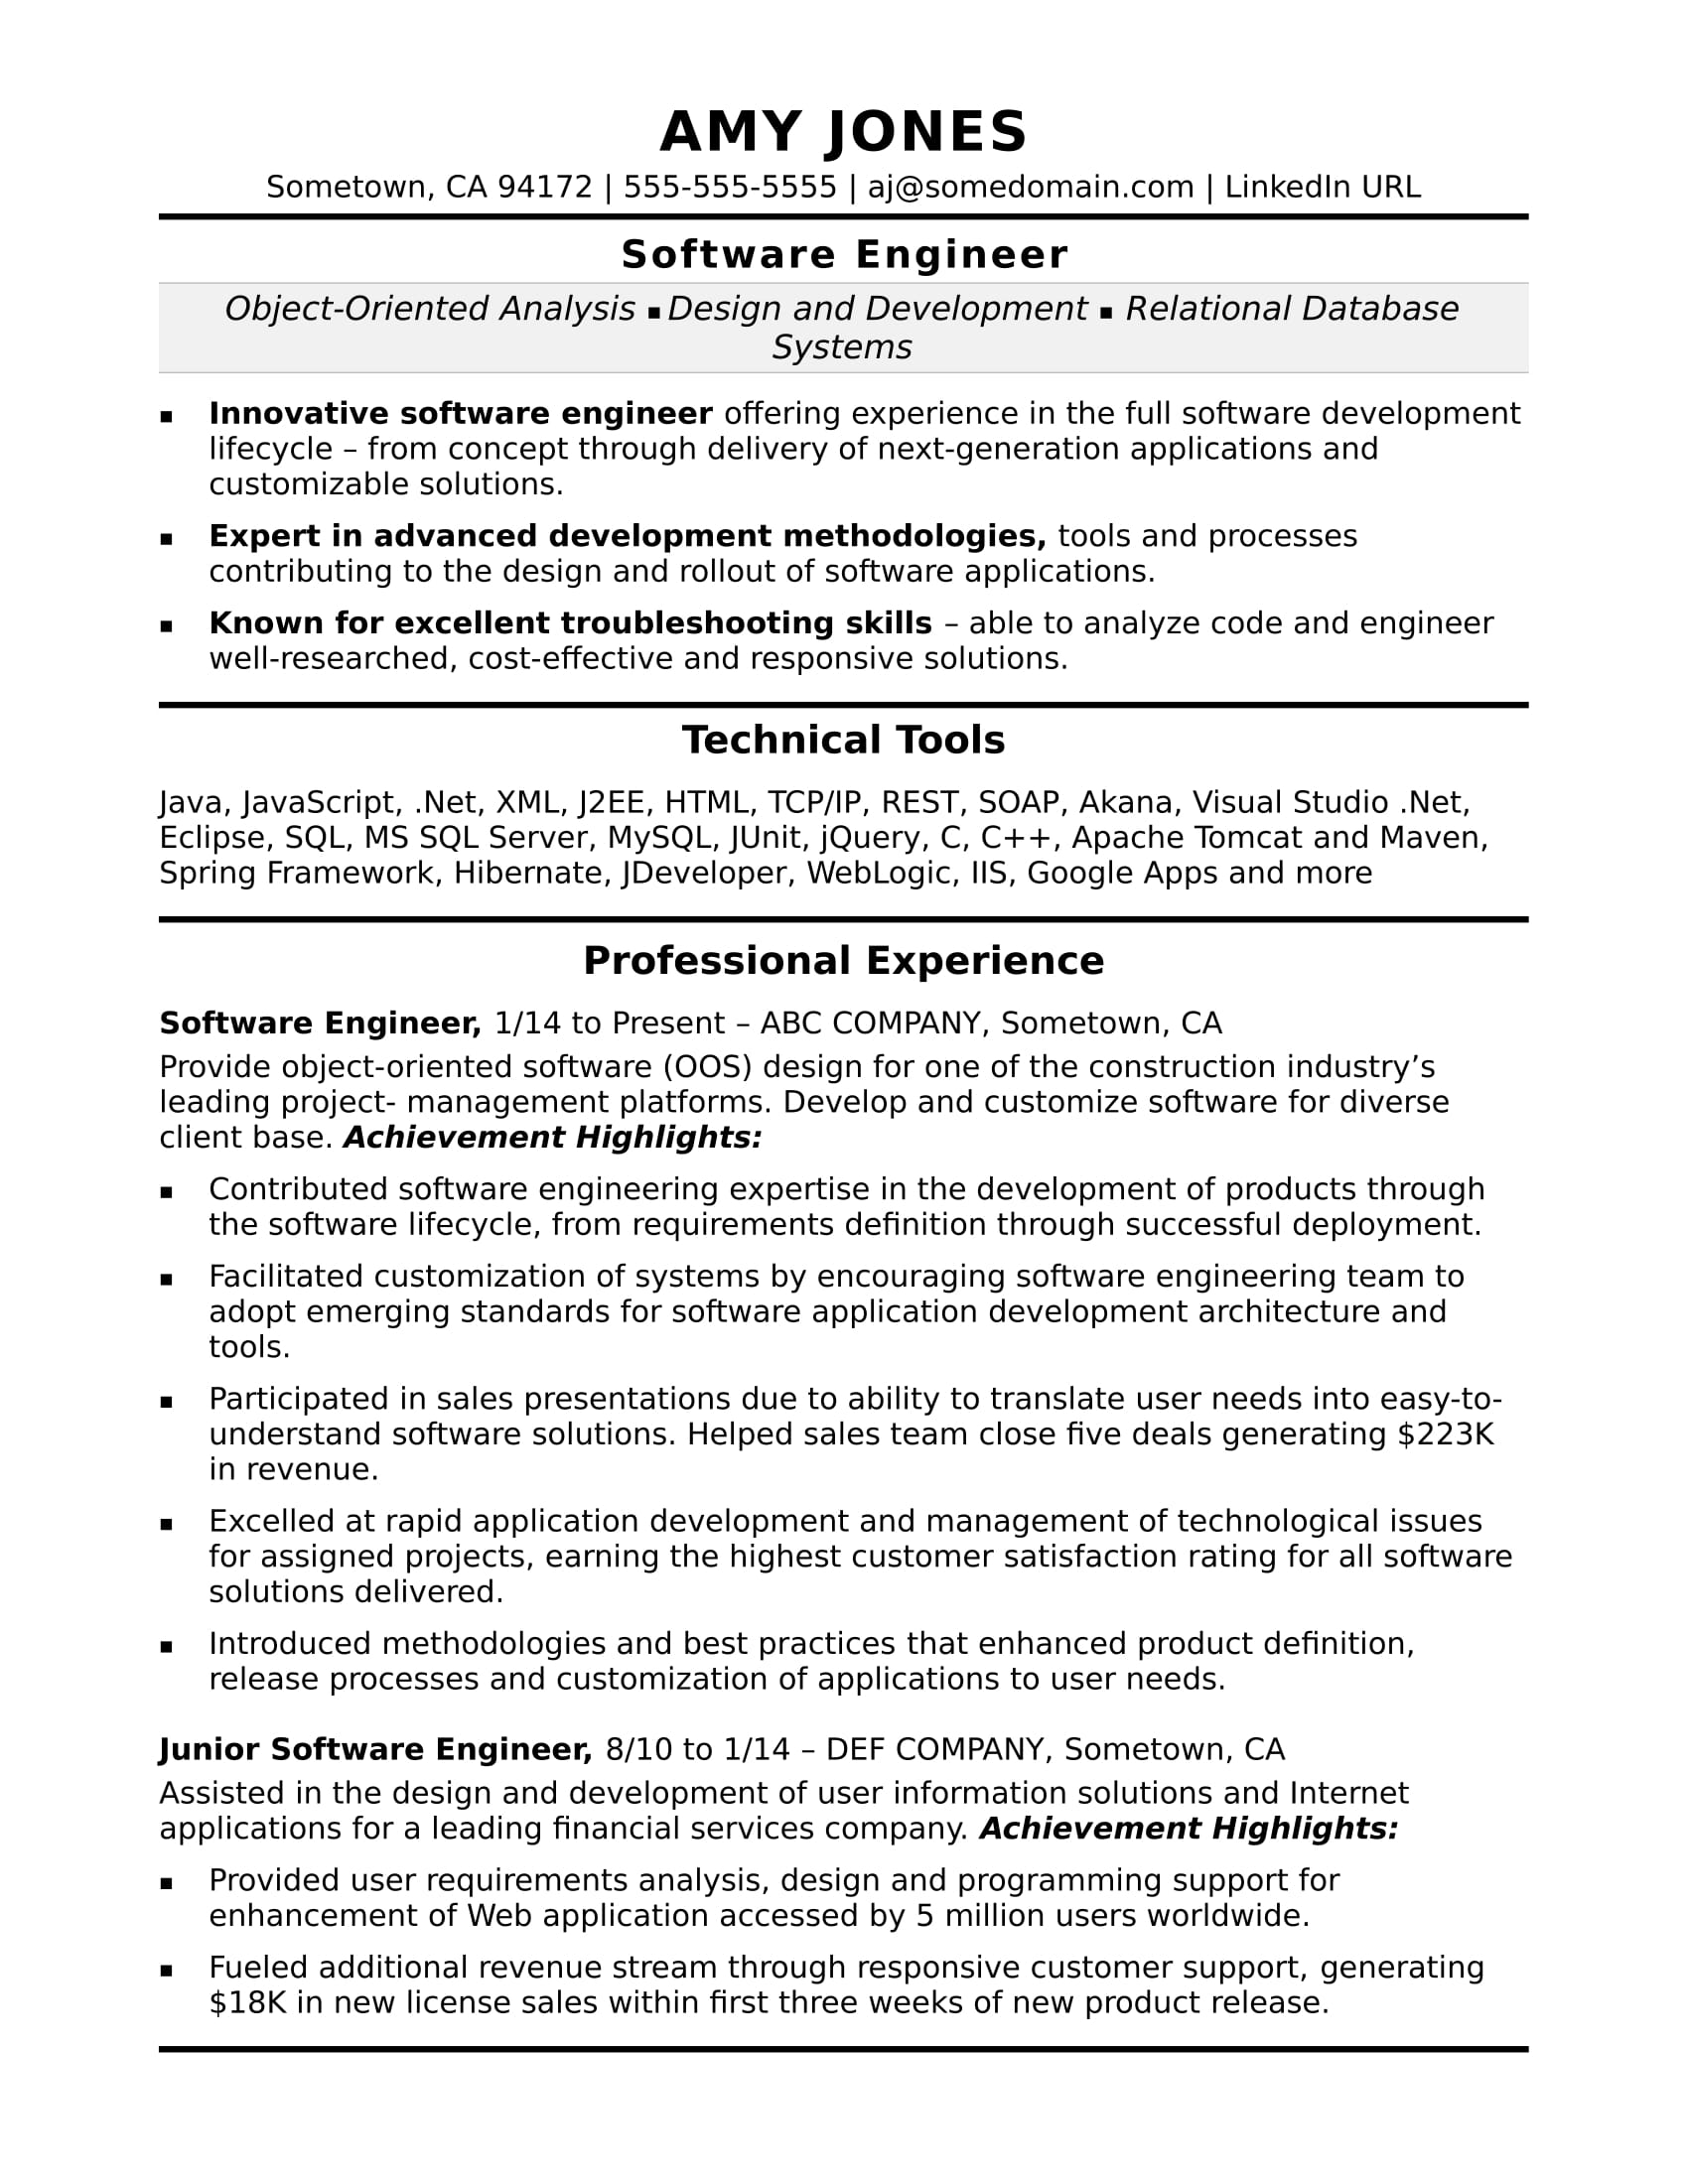 Midlevel Software Engineer Sample Resume Monster Com